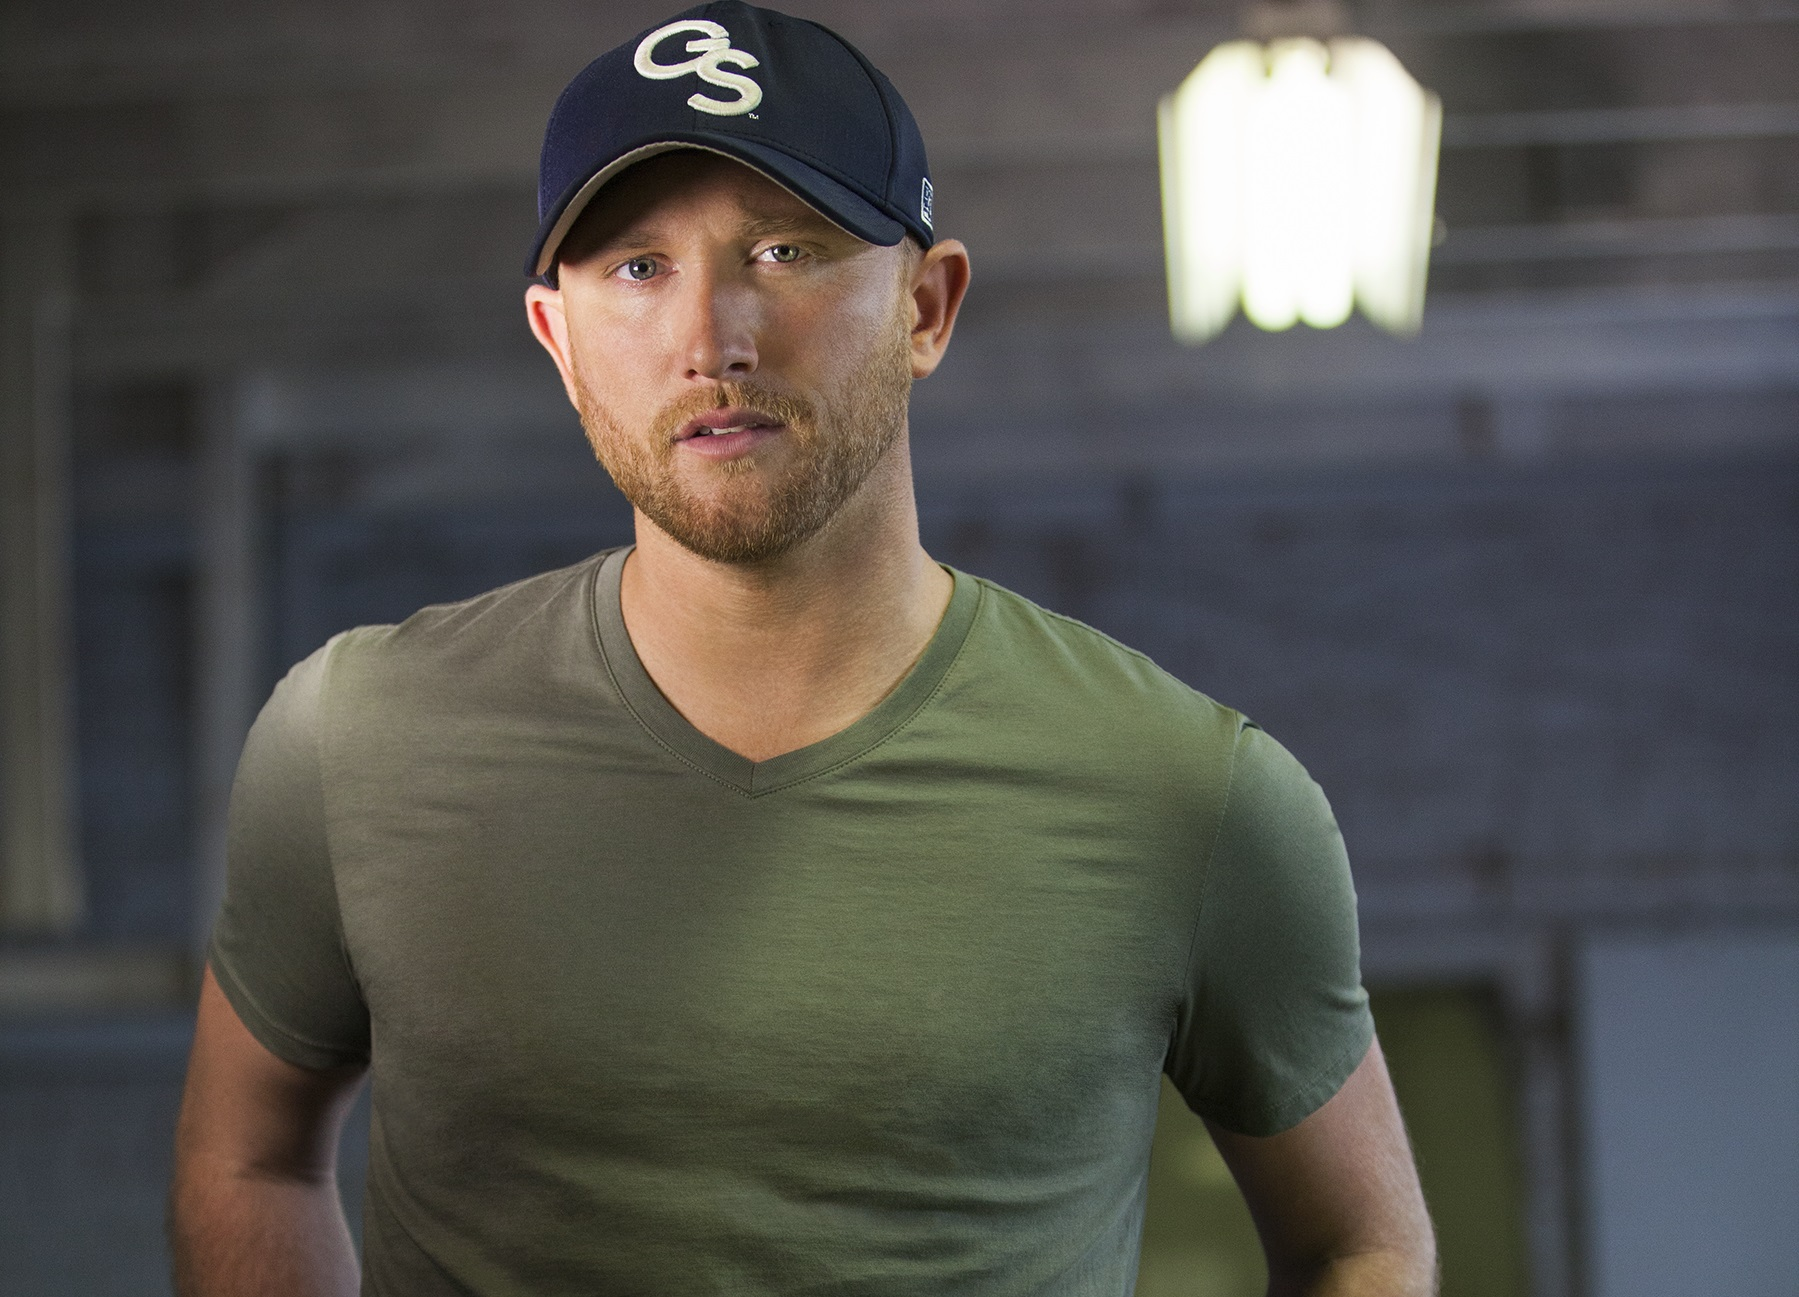 Cole Swindell earned a  million dollar salary, leaving the net worth at 3 million in 2017